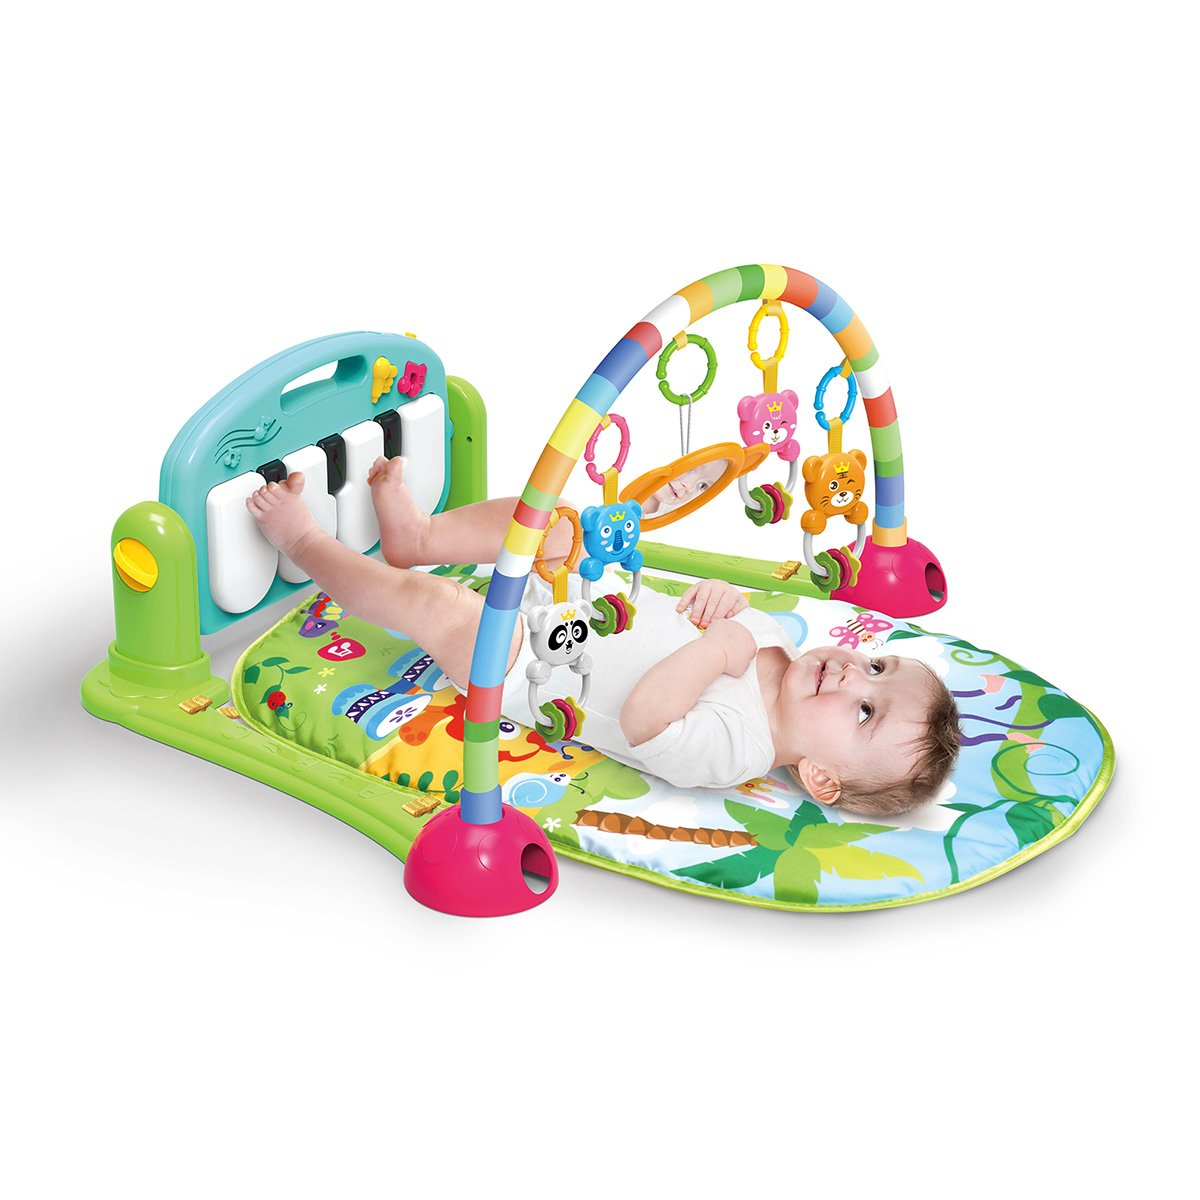 4 in 1 Kick and Play Piano Gym,Unisex Baby Gym Playmat Musical Activity Playmat, Soft Toys, Rattle, Light & Sound Playmat Discovery Carpet for Infants Toddlers Newborn Kick and Playmat 0-36 Months Tech Traders